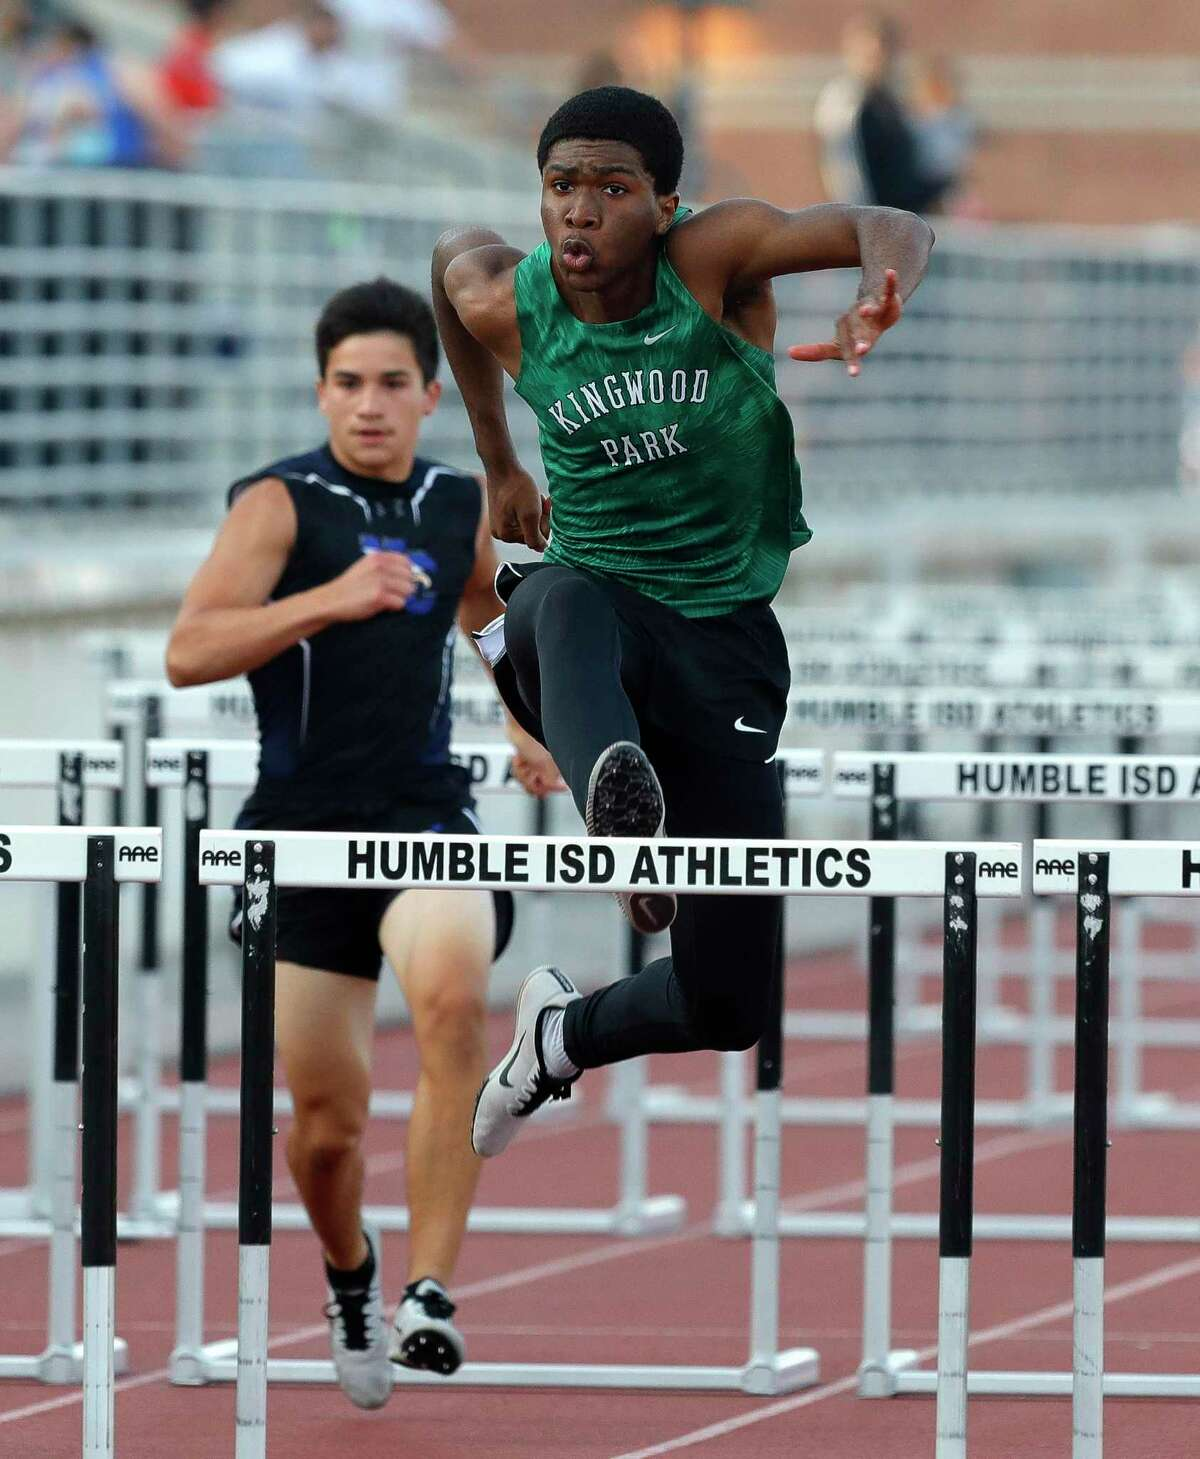 Solomon Karash of Kingwood Park competes in the boys 110-meter hurdles during the District 20-5A track and field championships at Turner Stadium, Thursday, April 8, 2021, in Humble.